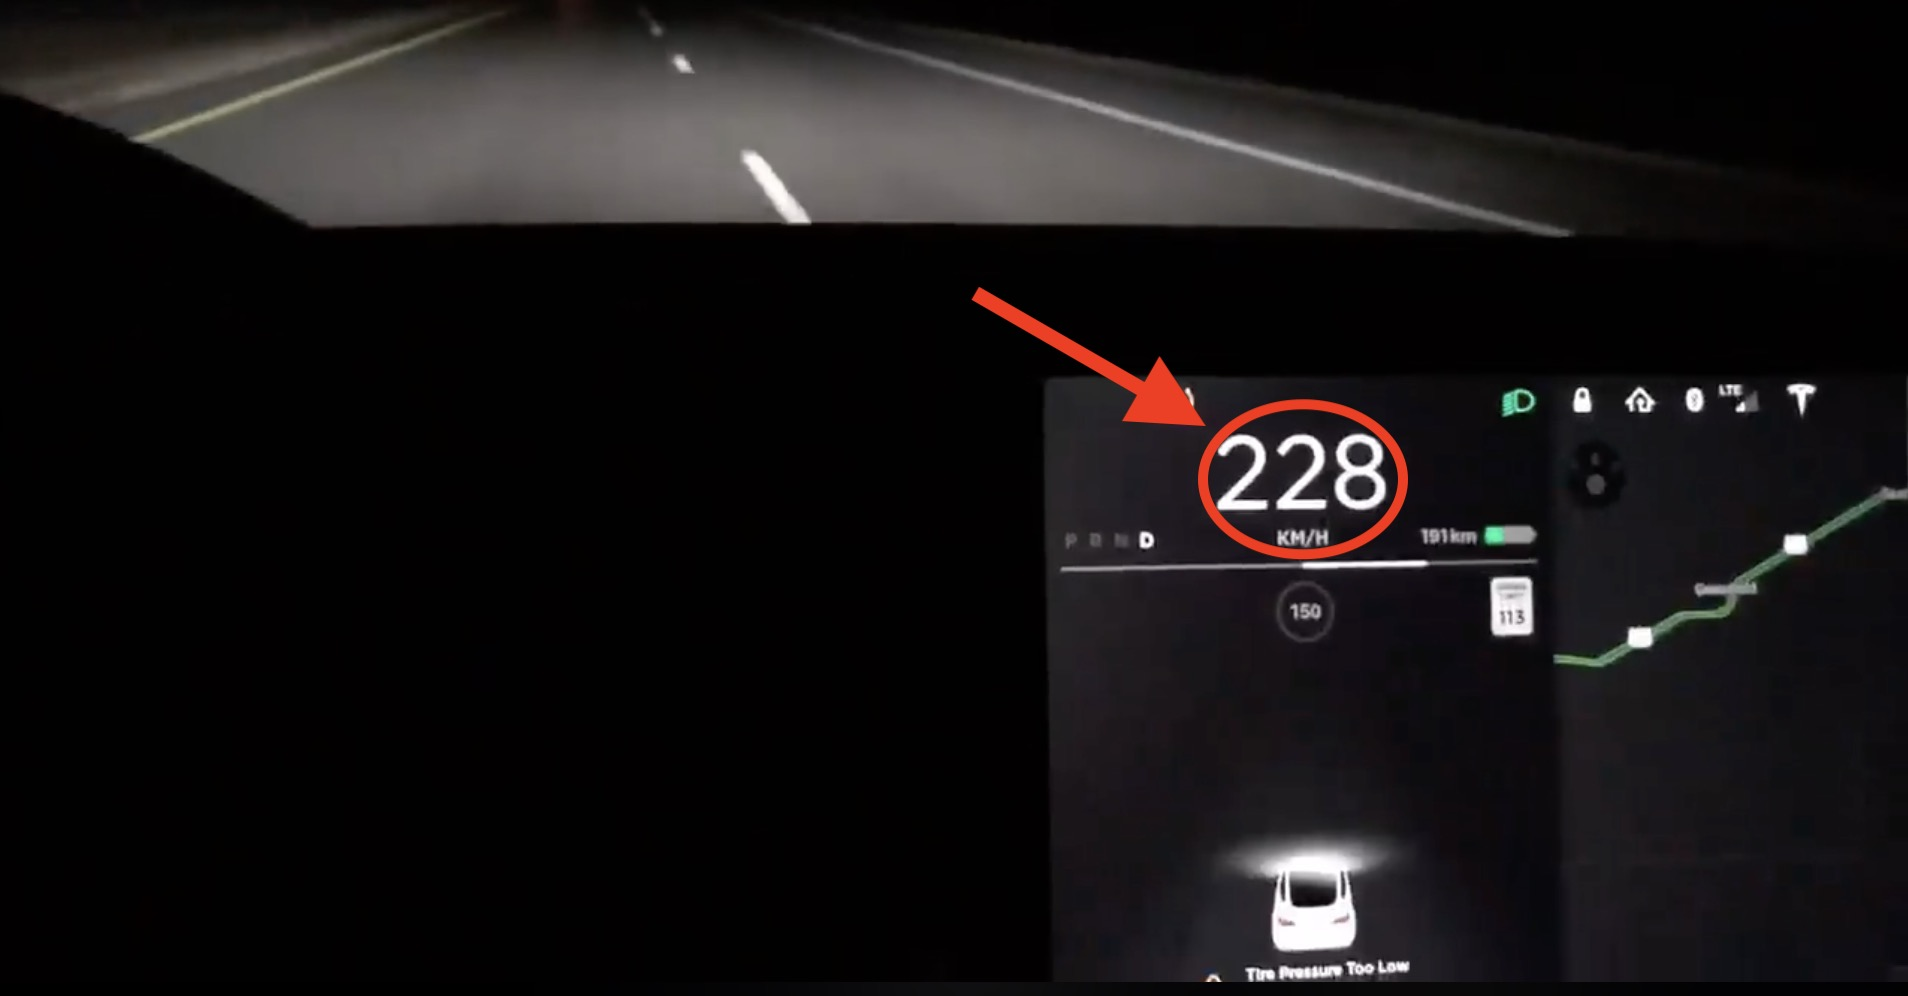 Tesla Model 3 Owner Shows Top Speed Of 141 Mph And Other